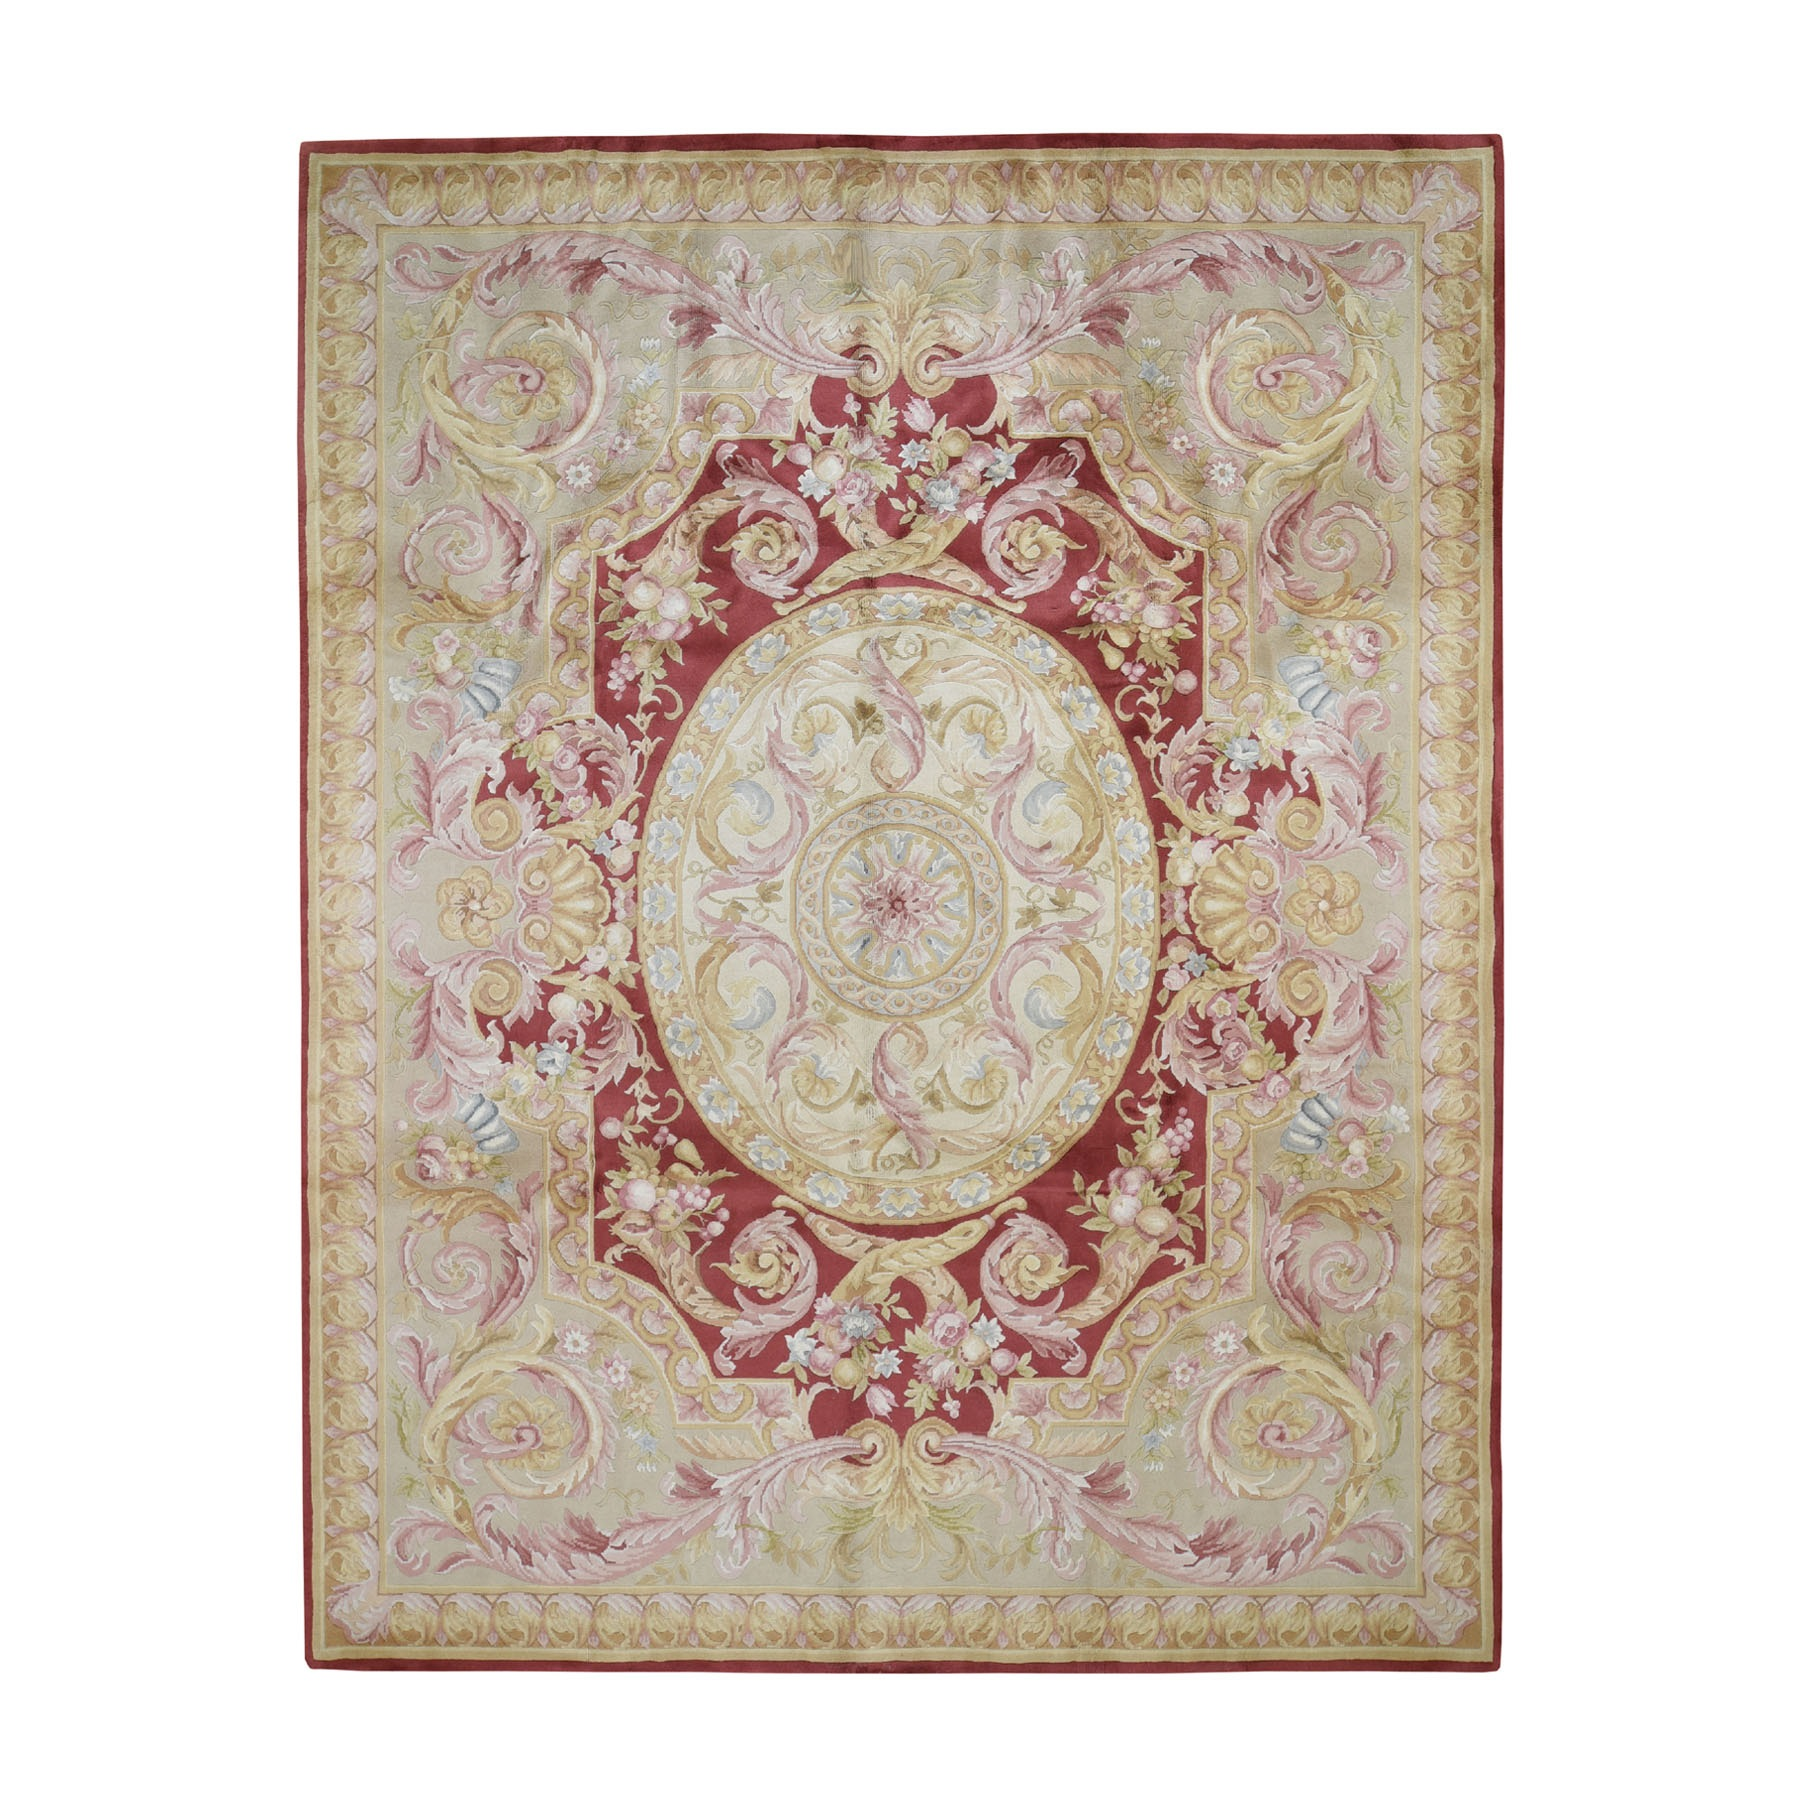 8'X10' Hand-Knotted Thick And Plush Savonnerie Napoleon Iii Design Oriental Rug moad6778